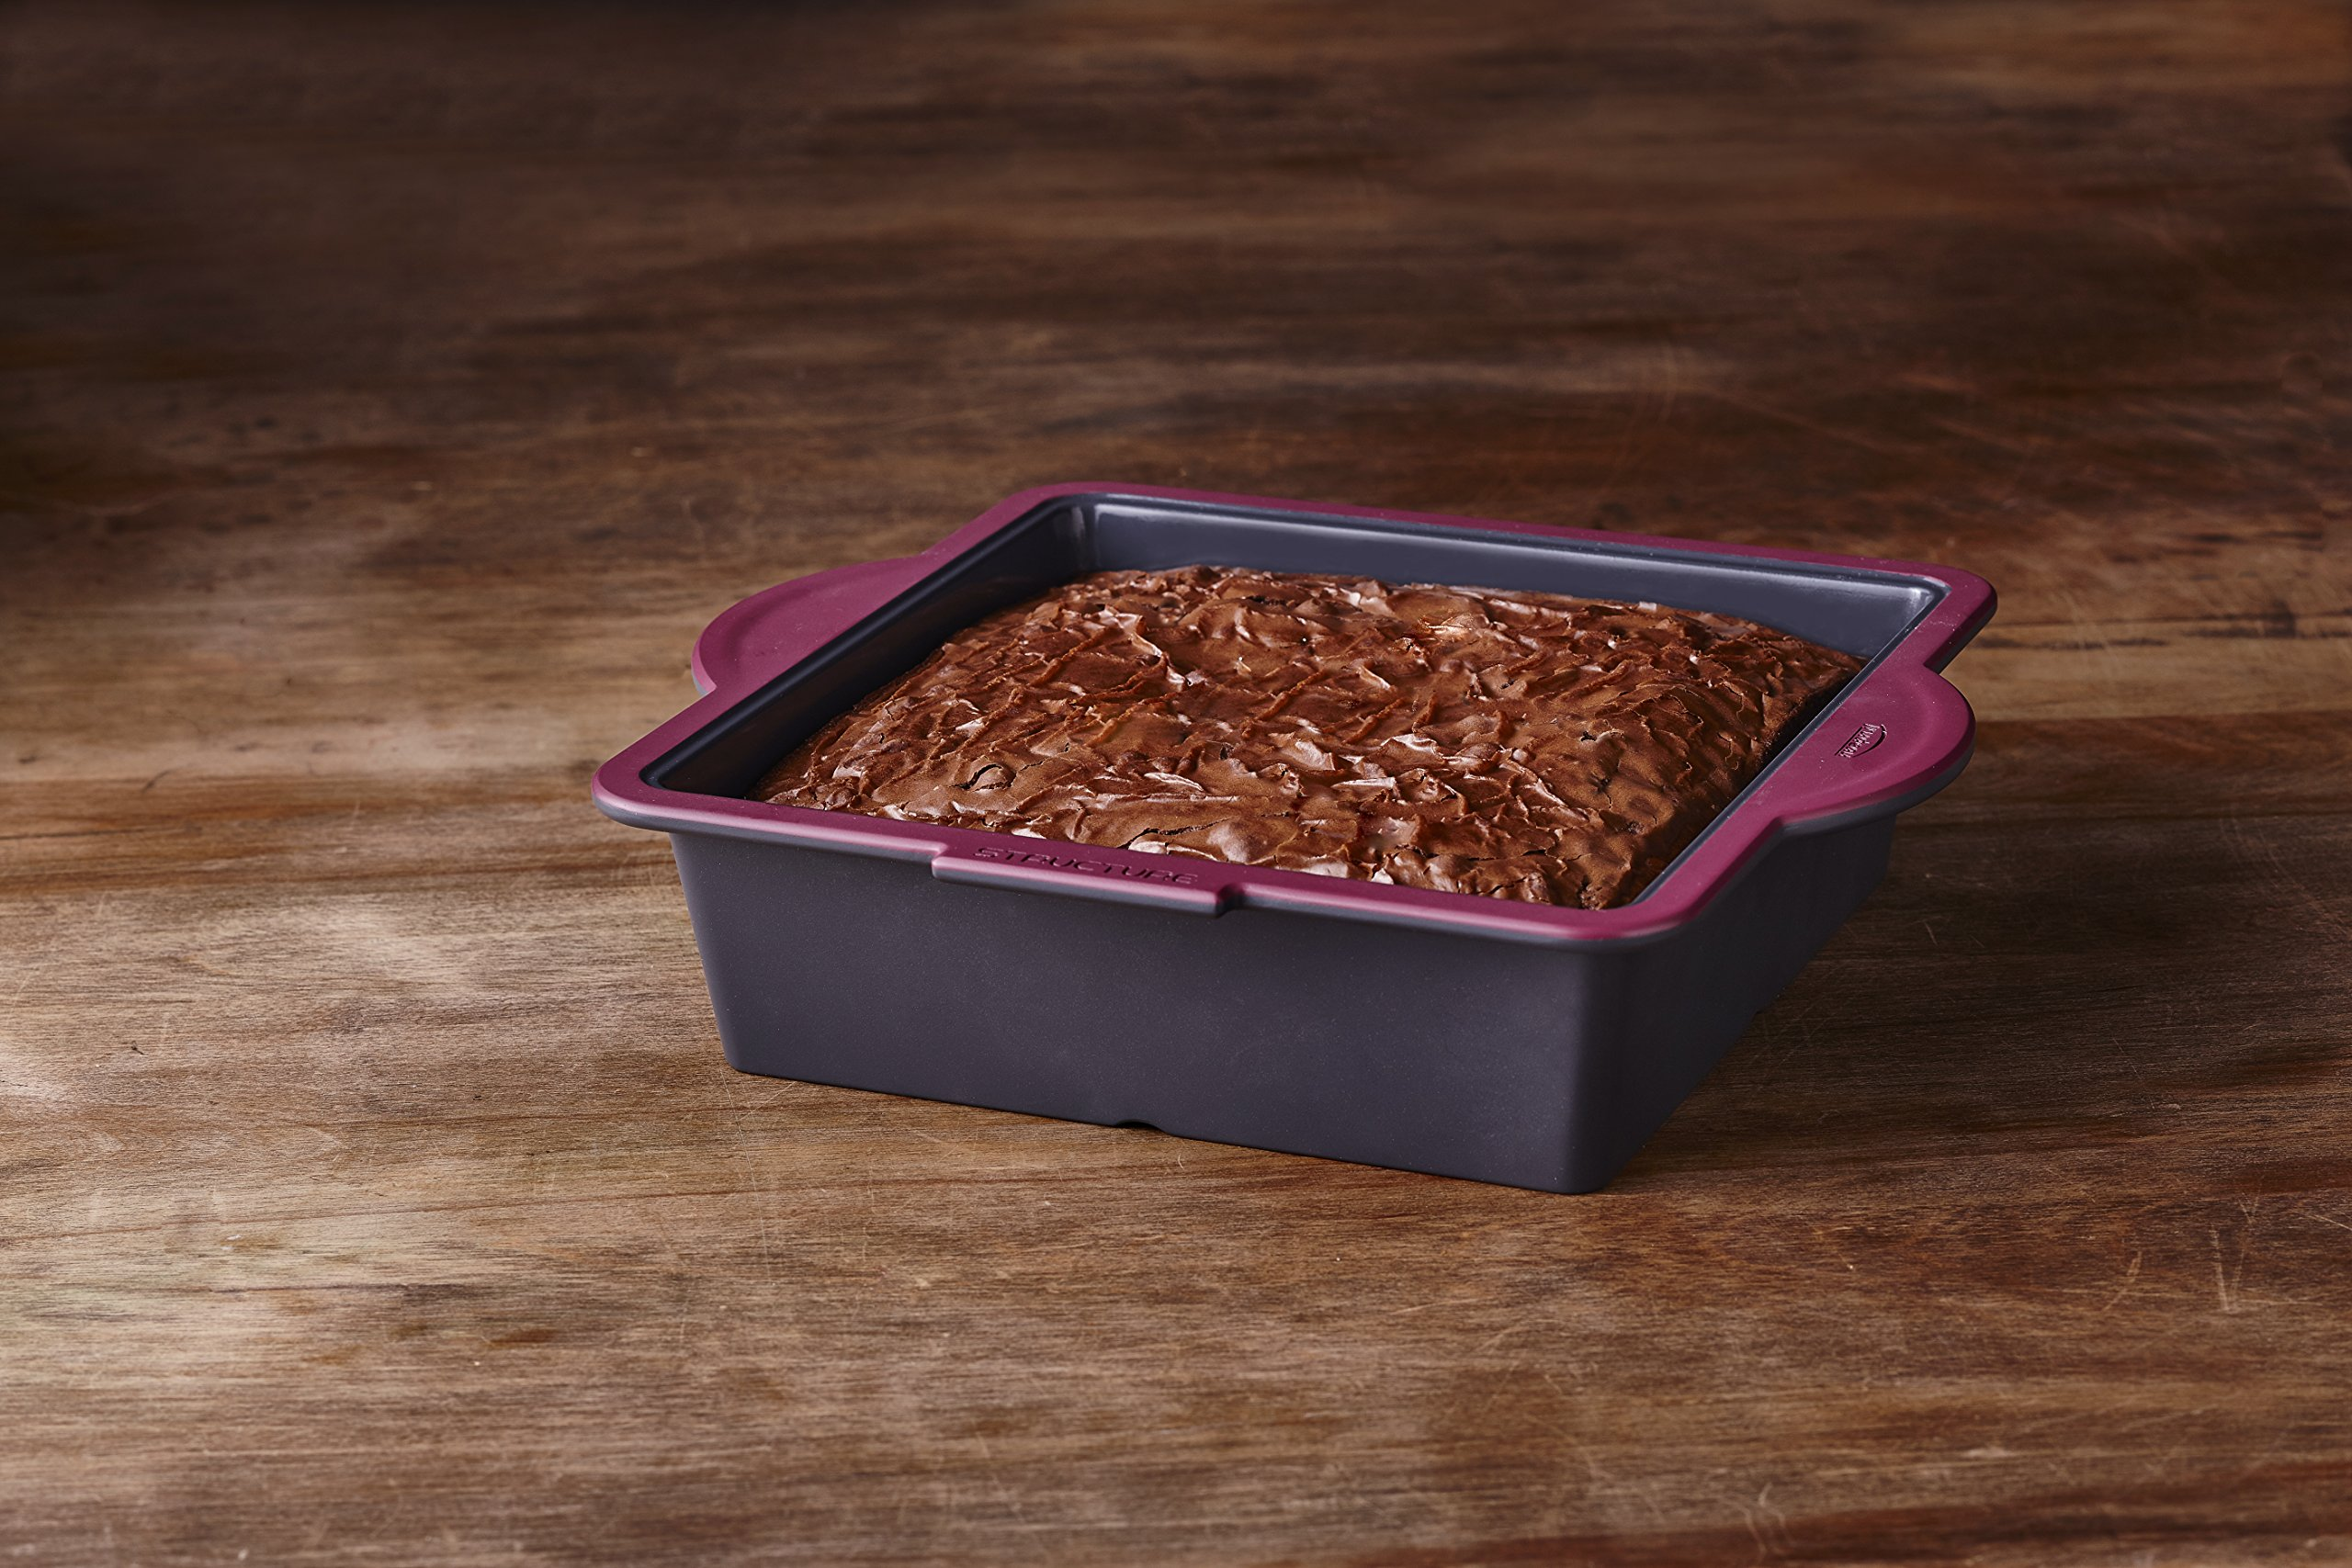 Trudeau 09914012 Structure Square Novelty Cake Pans in Silicone, Grey/Pink by Trudeau (Image #2)